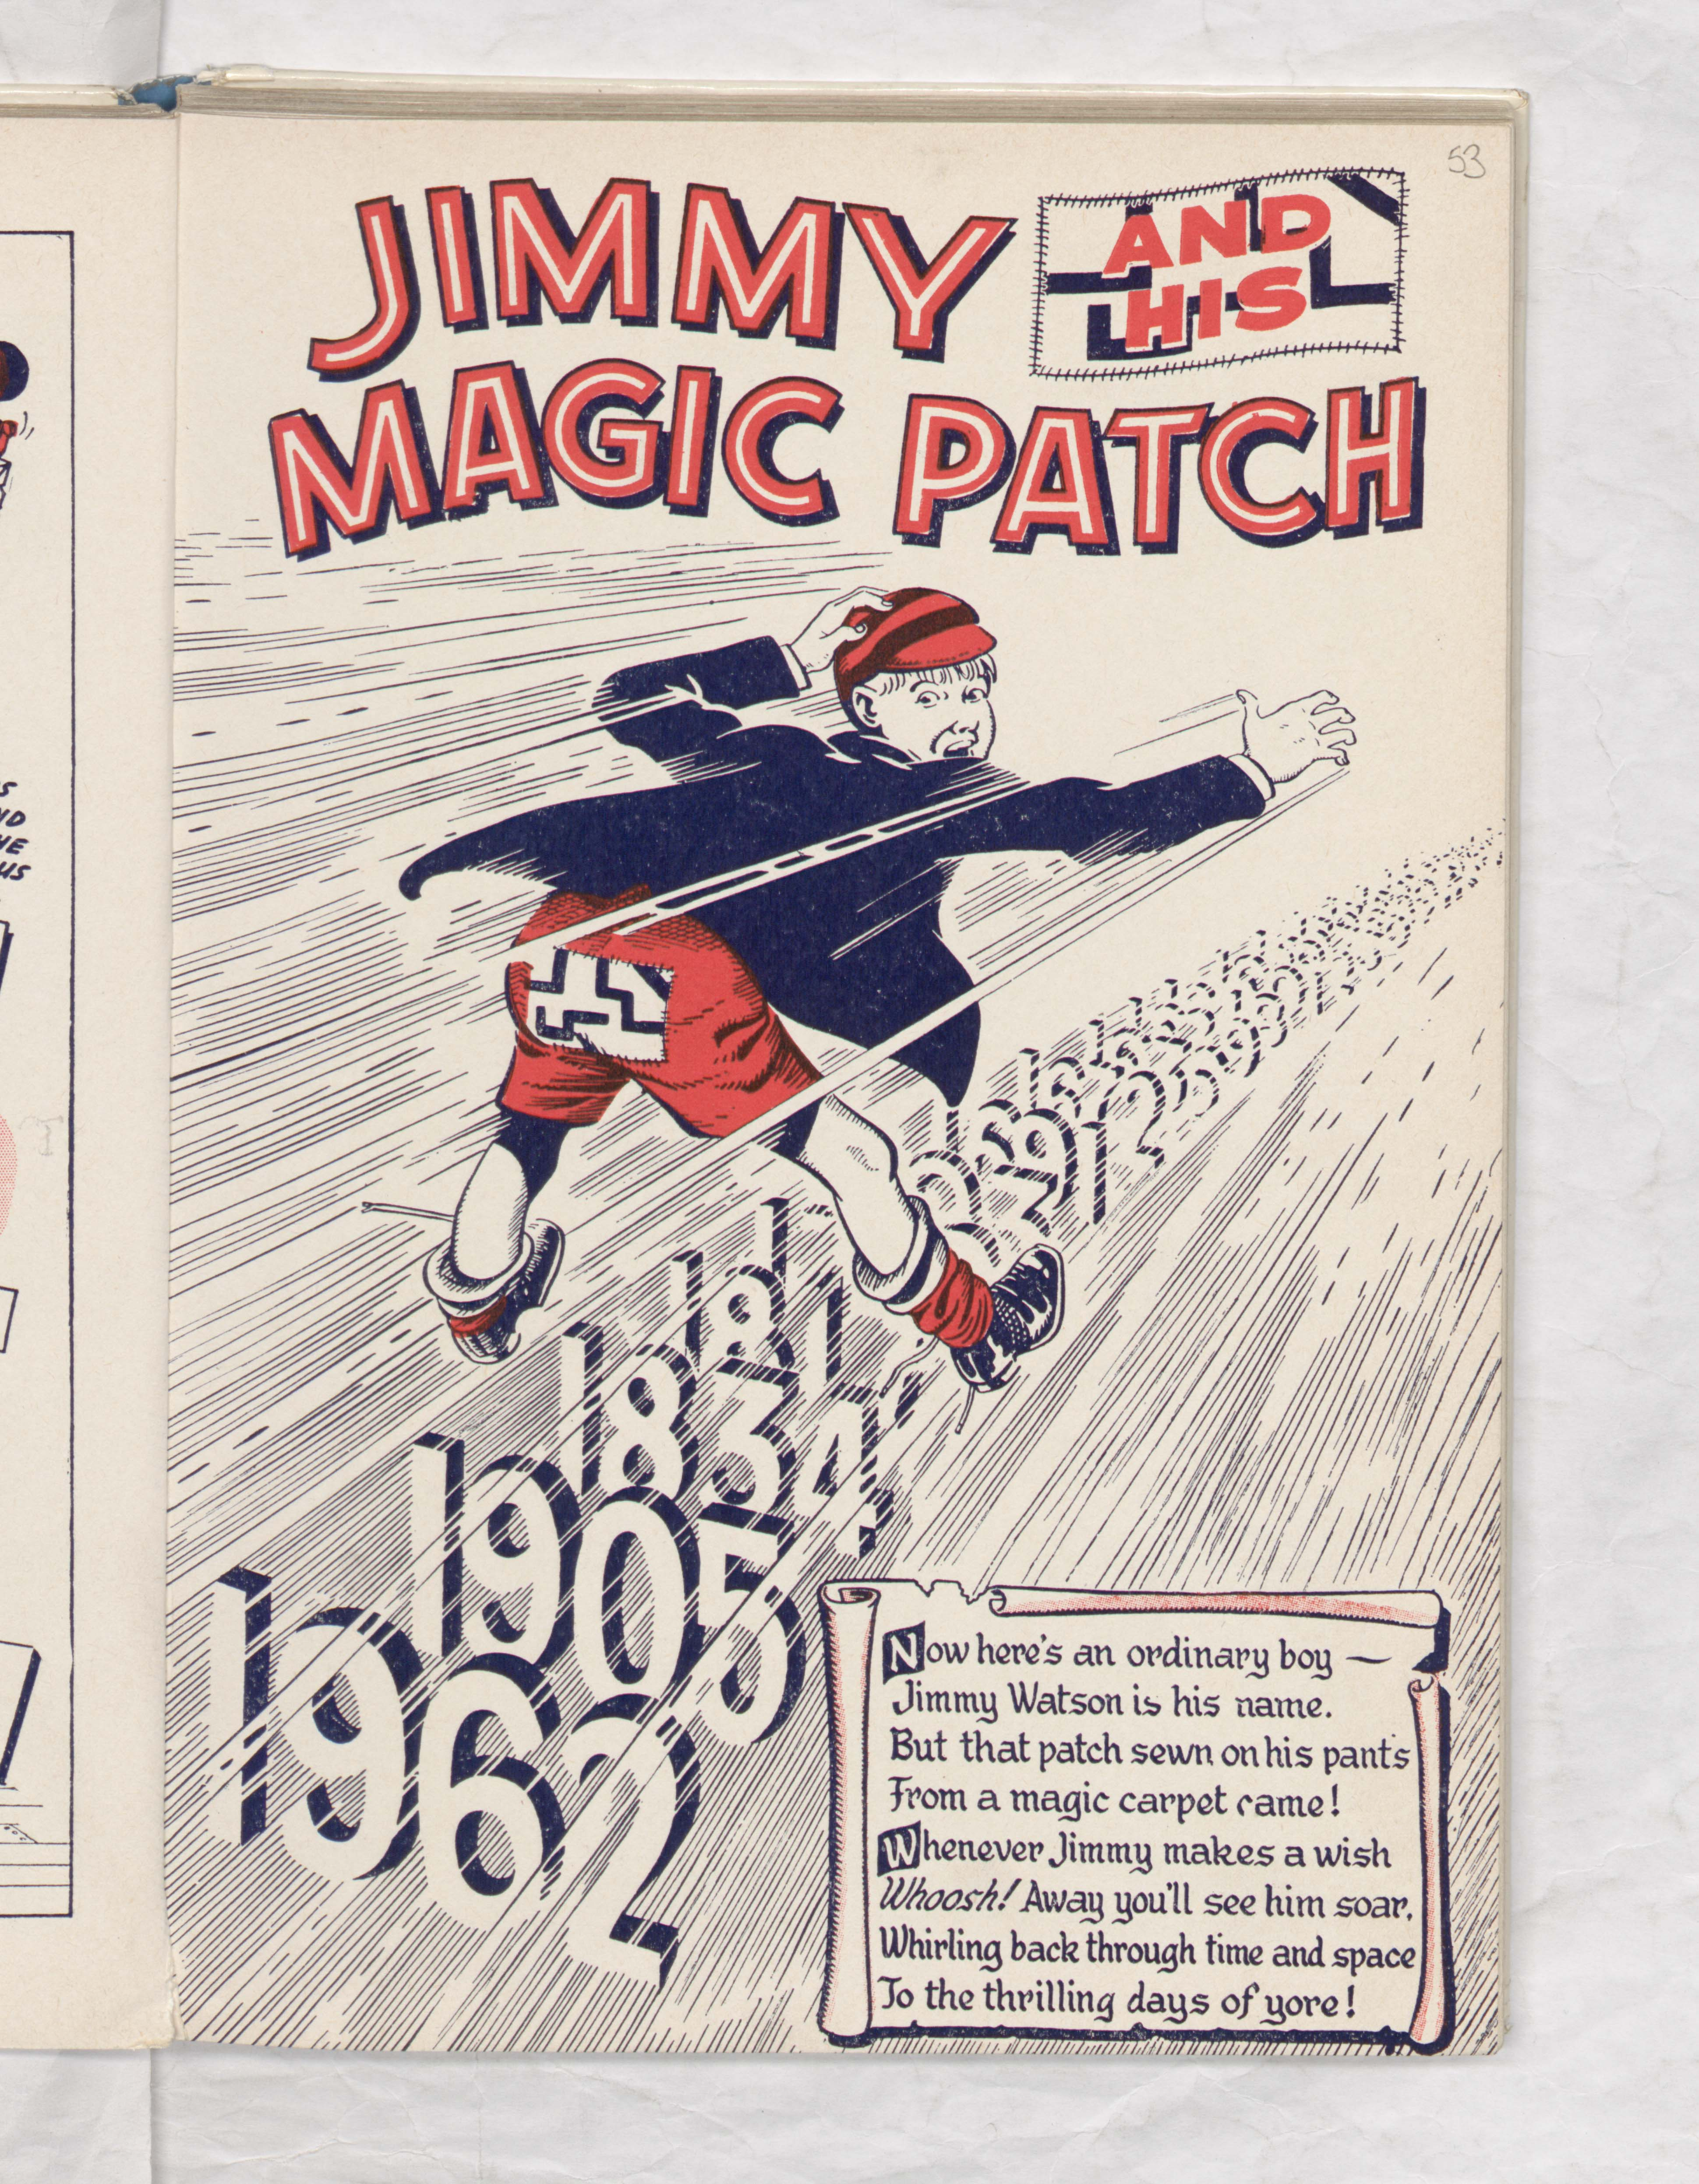 Jimmy and his Magic Patch - Beano Book 1963 Annual